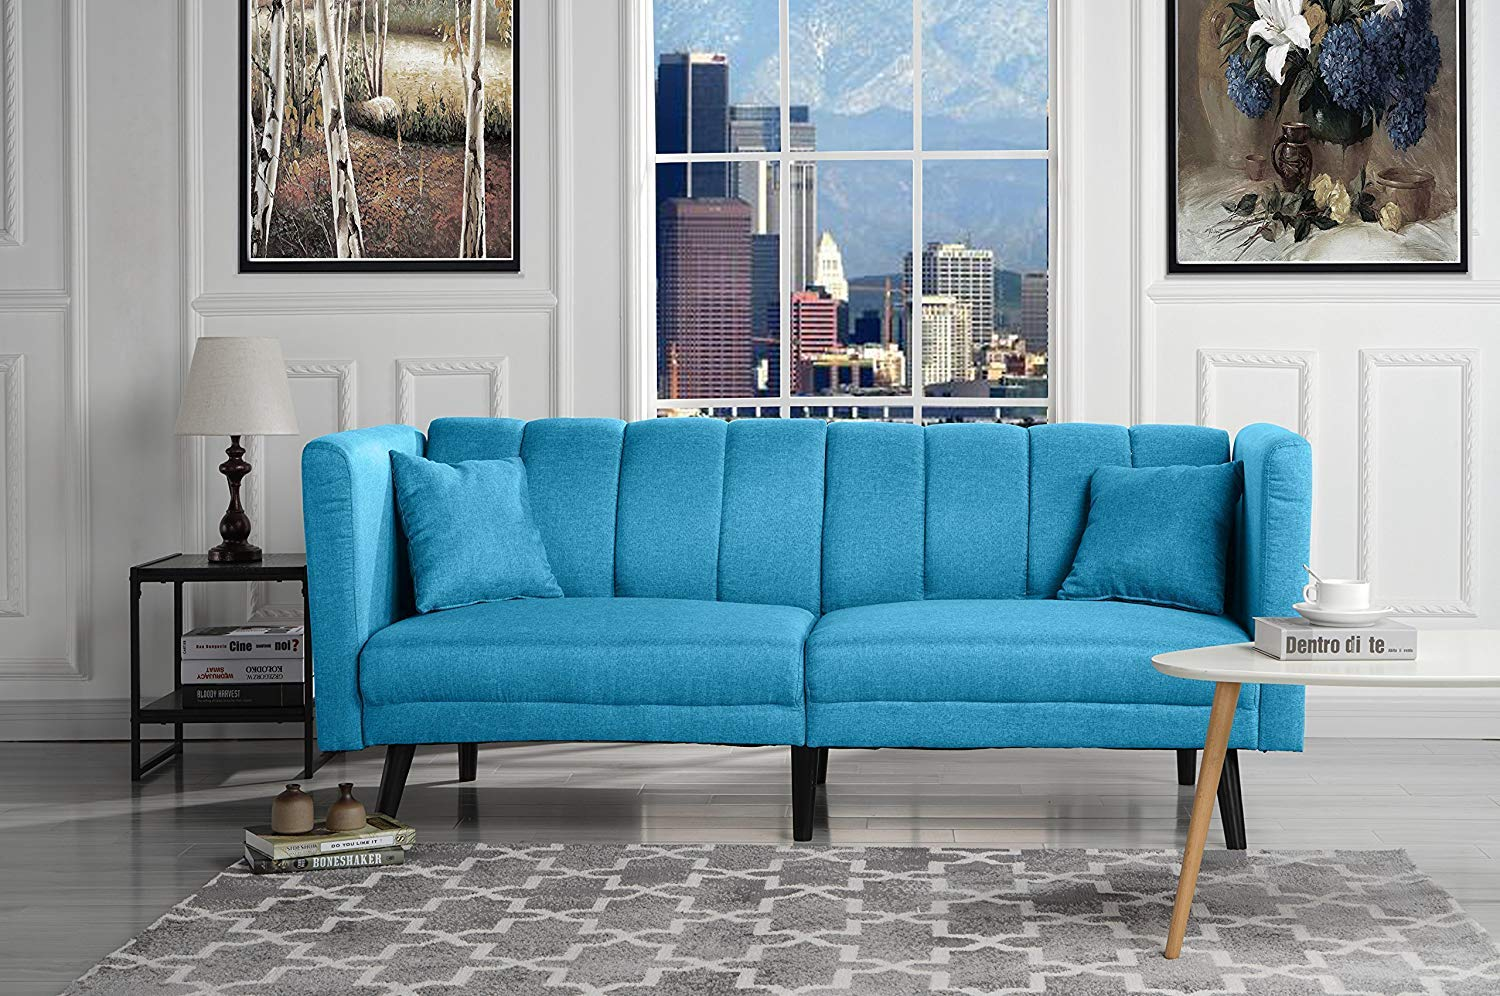 Blue Futon Sleeper Sofa Bed Couch, Convertible Futon Splitback Sofa Loveseat, Modern (Futon Sofa Beds) Lounger Futon Furniture | Sofas & Couches for Small Space Living Room, Home (Light Blue) by Casa AndreaMilano